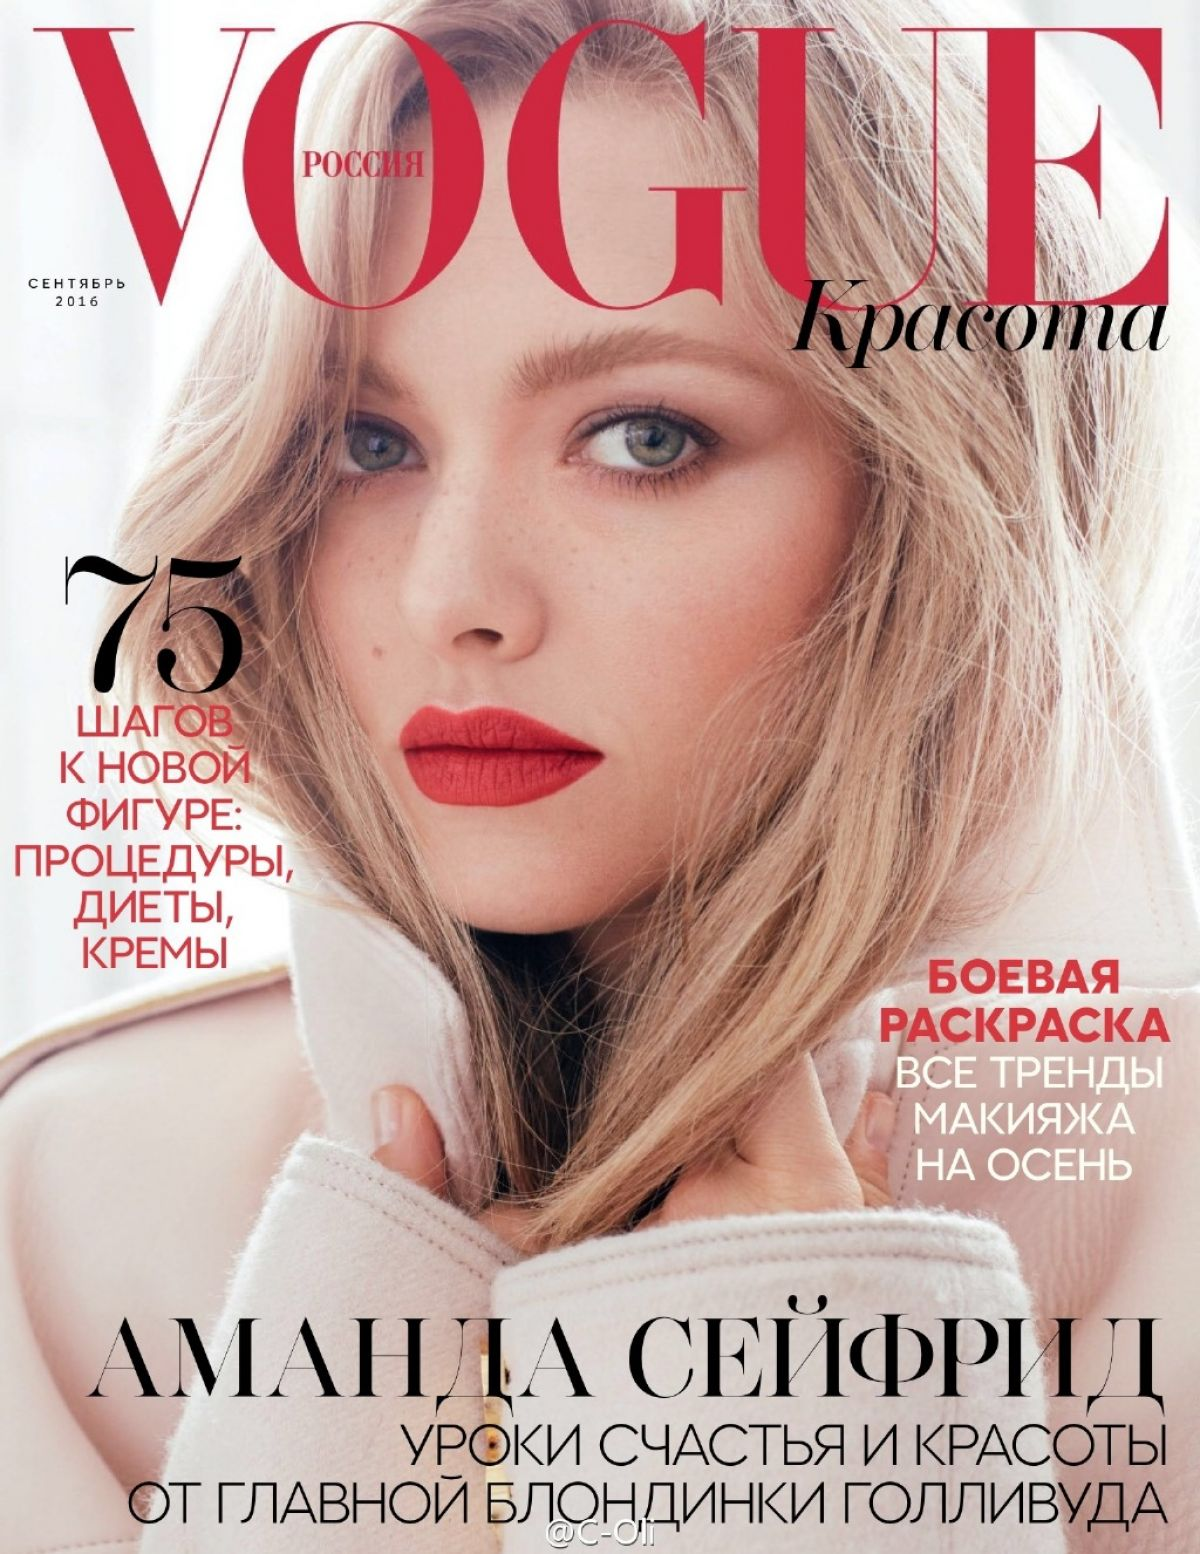 AMANDA SEYFRIED in Vogue Magazine, Russia September 2016